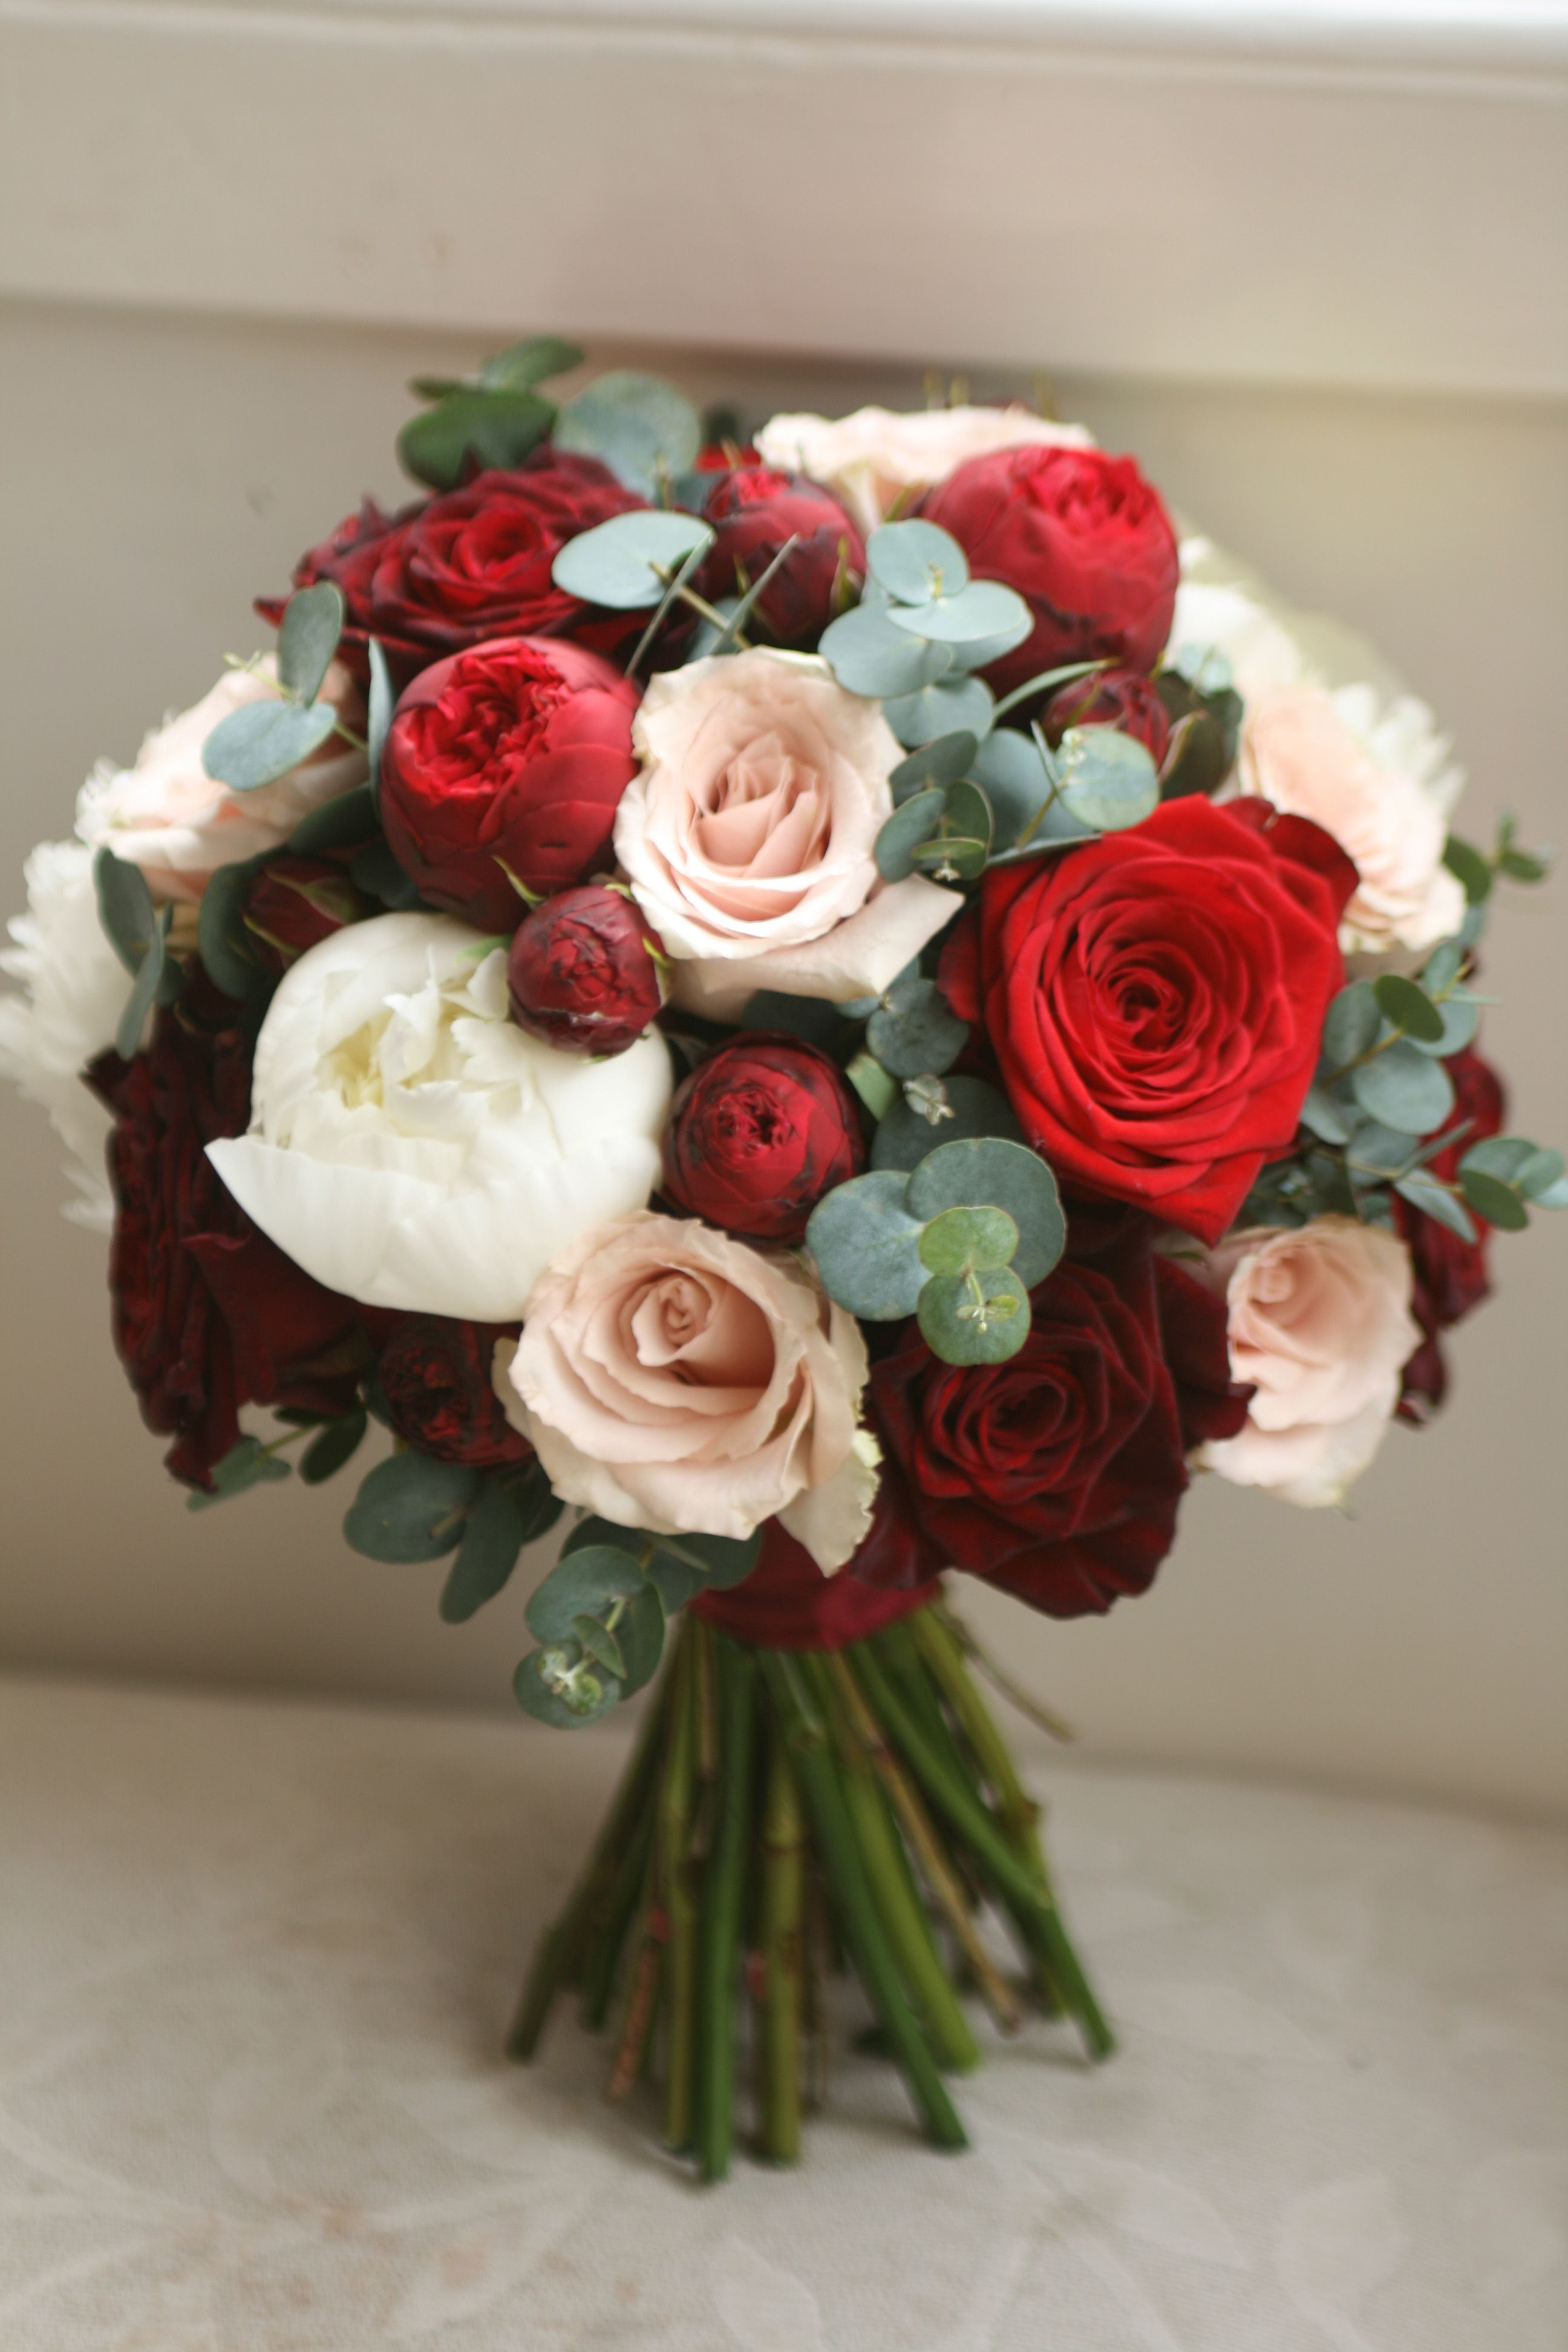 Bouquet With Black Baccara Roses Spray Piano Roses Quicksand Roses